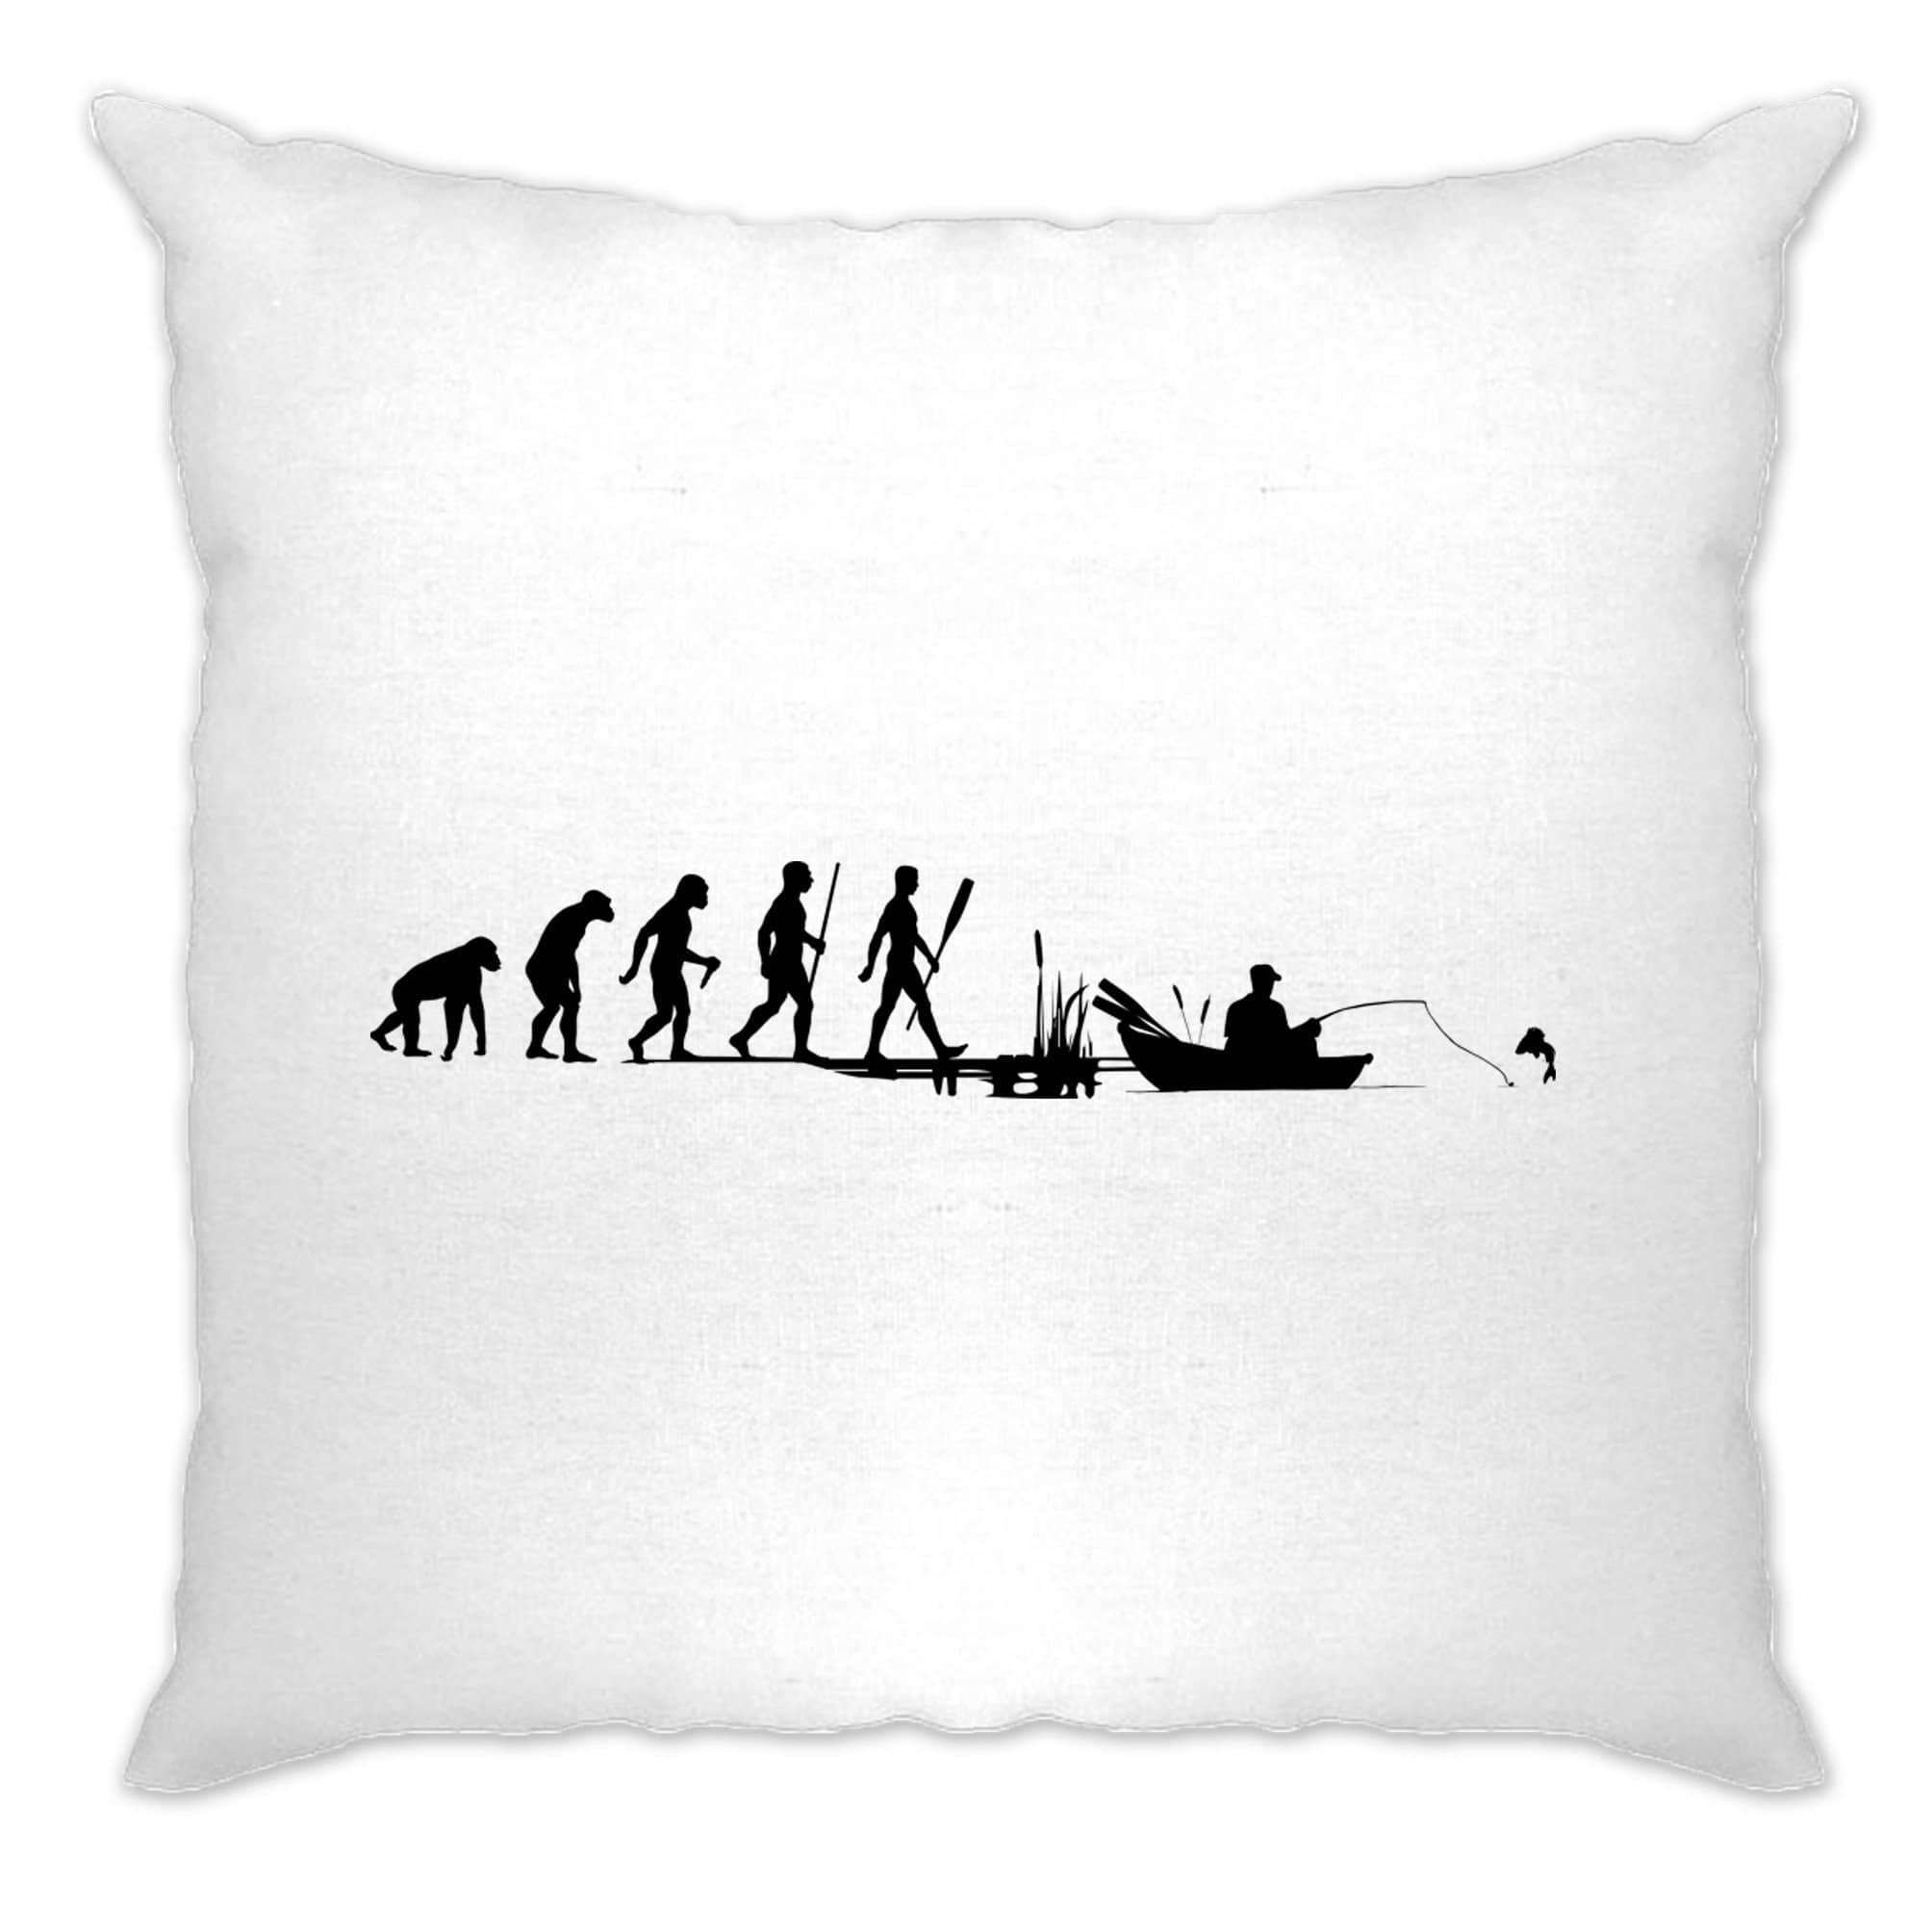 Fishing Cushion Cover Evolution Of An Angler